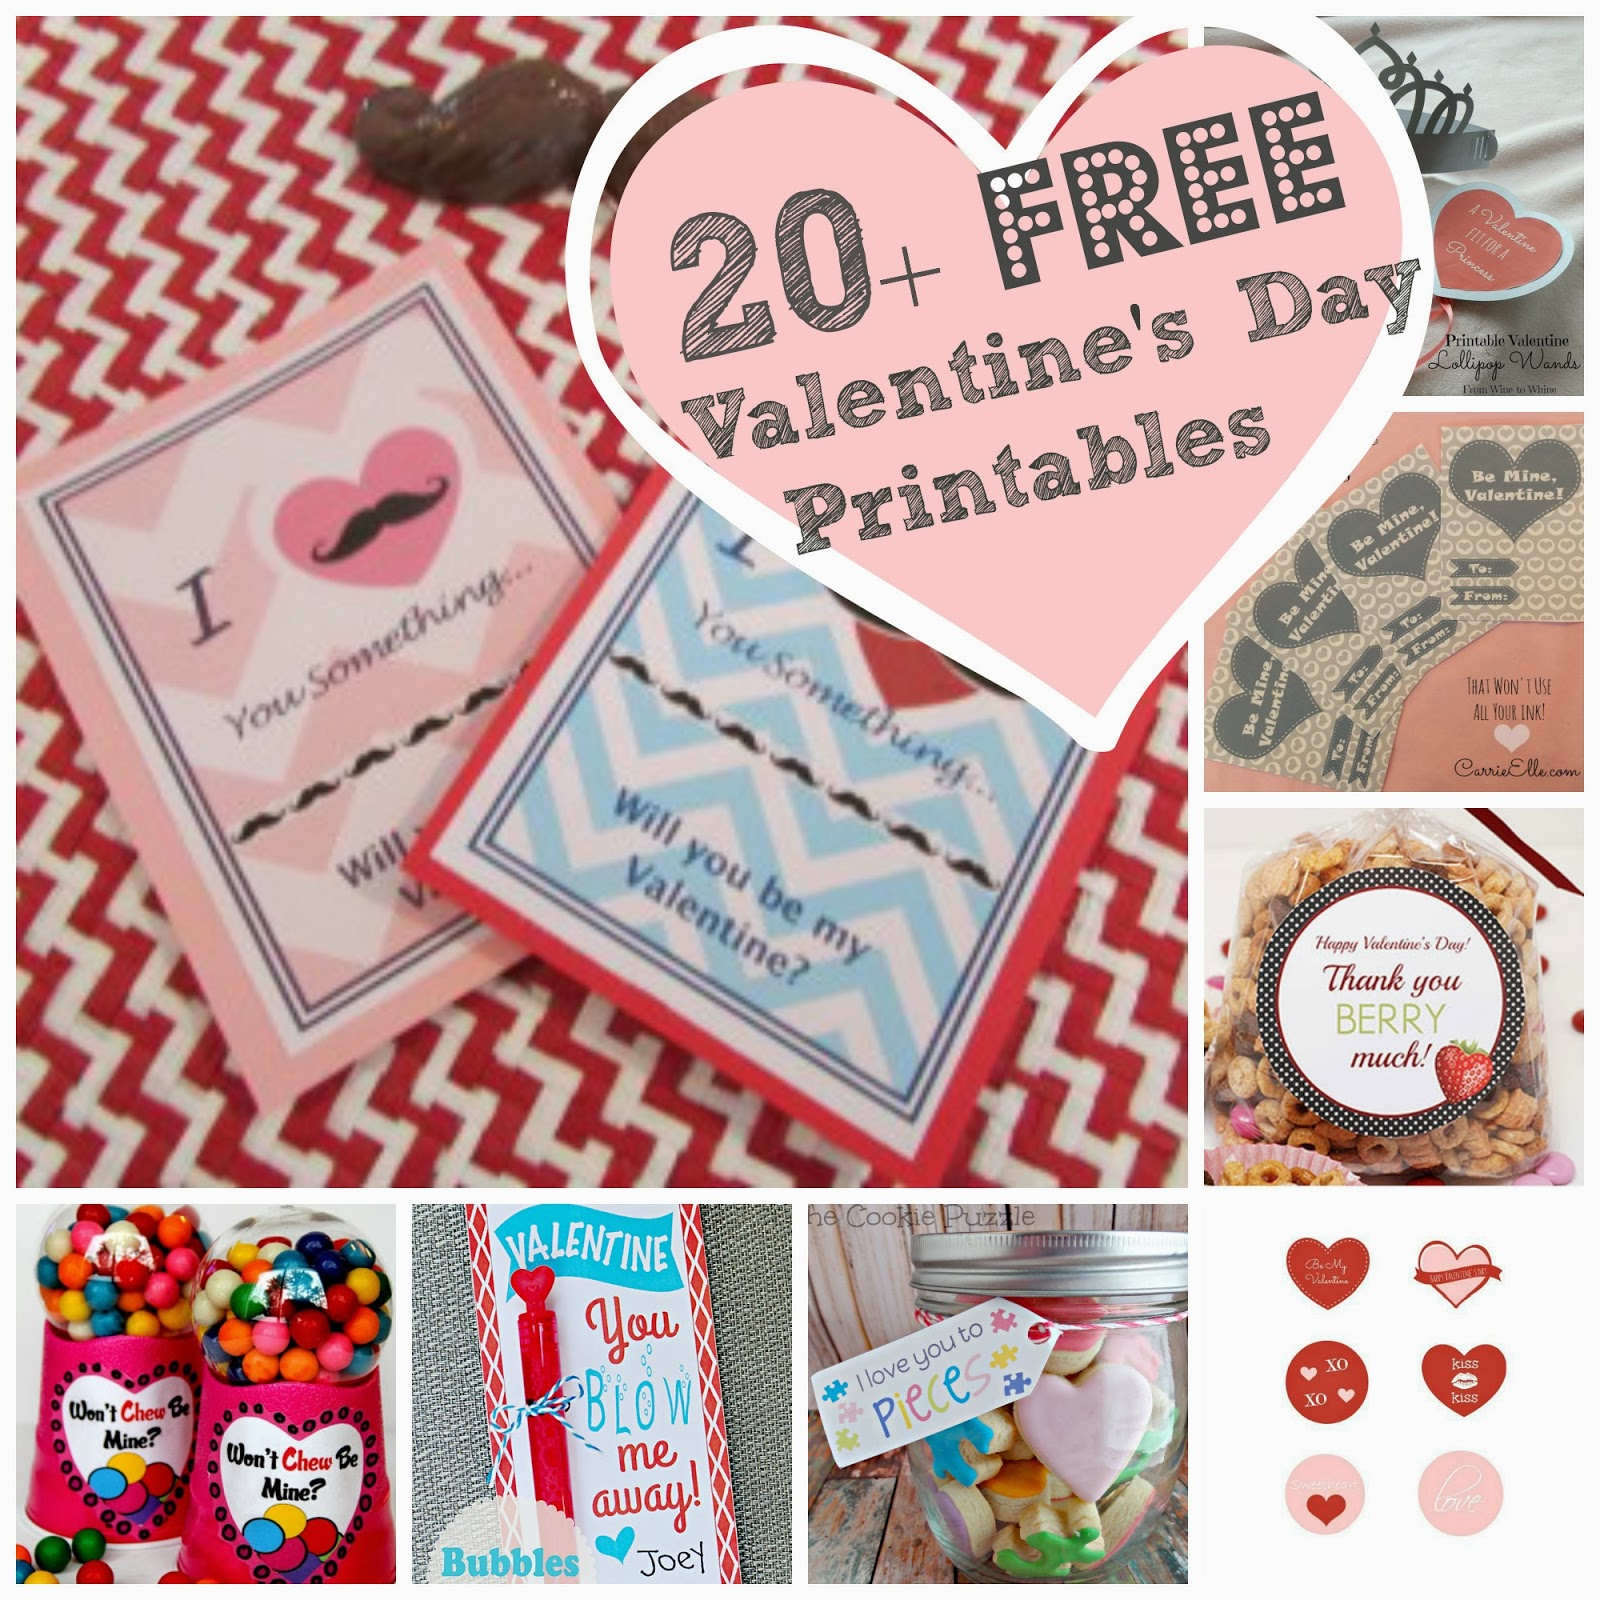 Just A Little Creativity Over 20 Of The Best Free Valentine S Day Printables